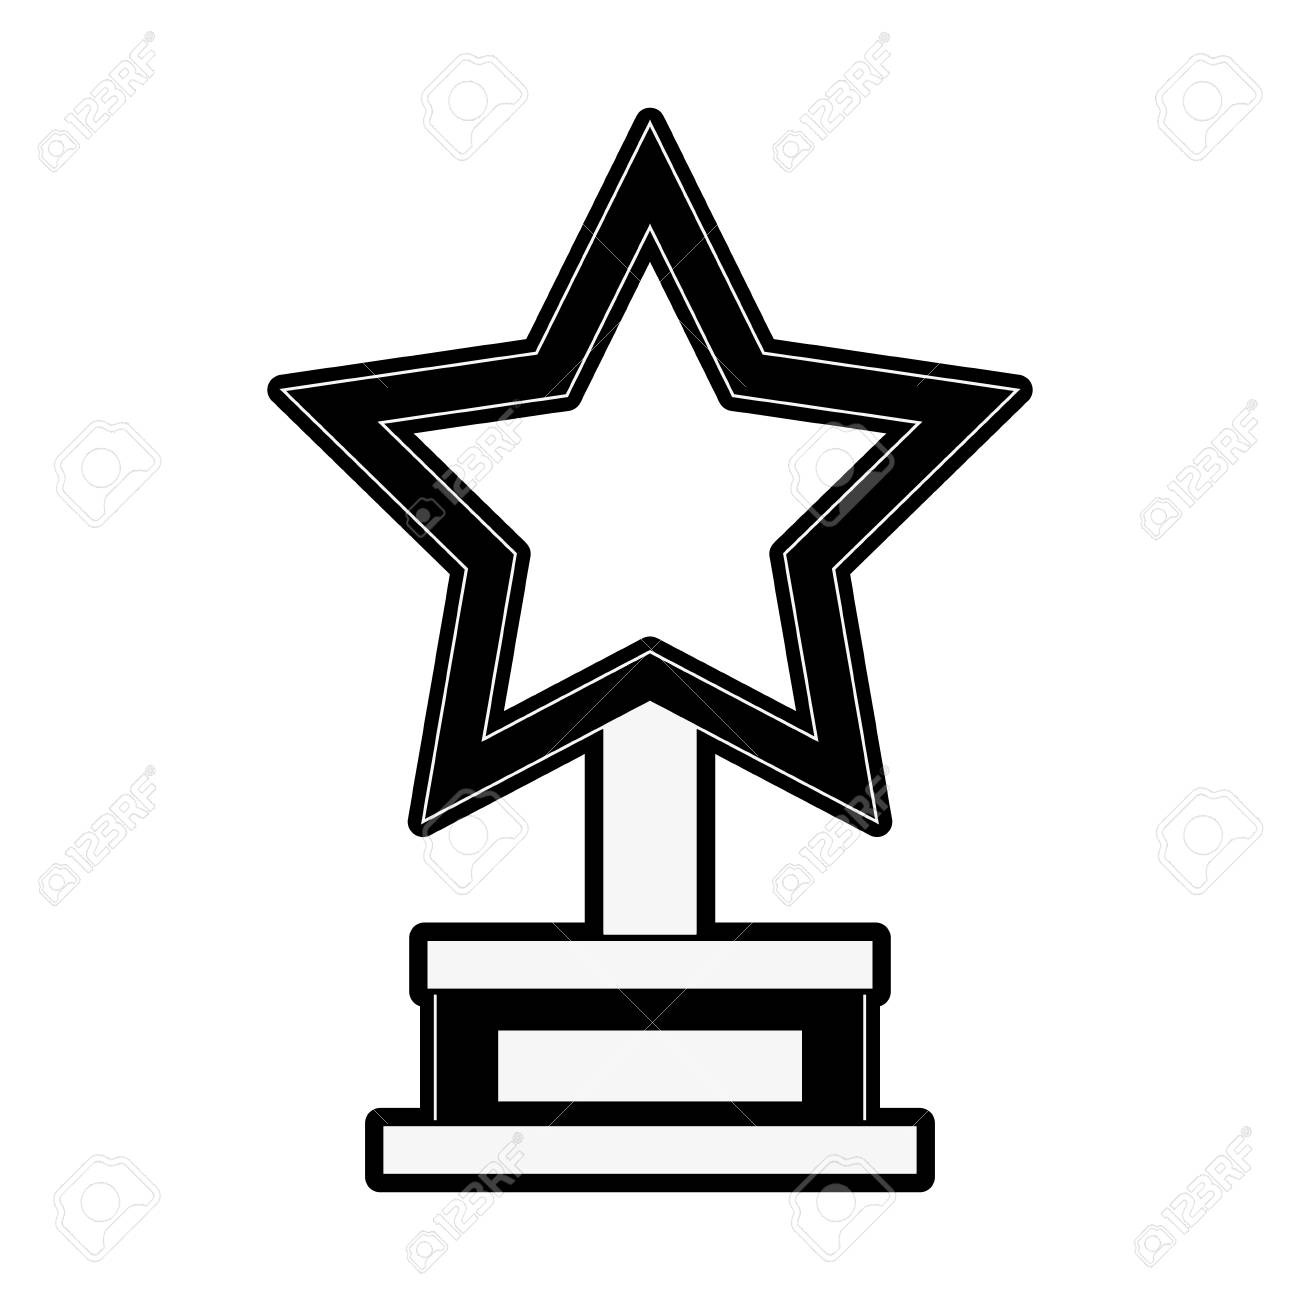 Star Trophy Icon Image Vector Illustration Design Black And White Stock